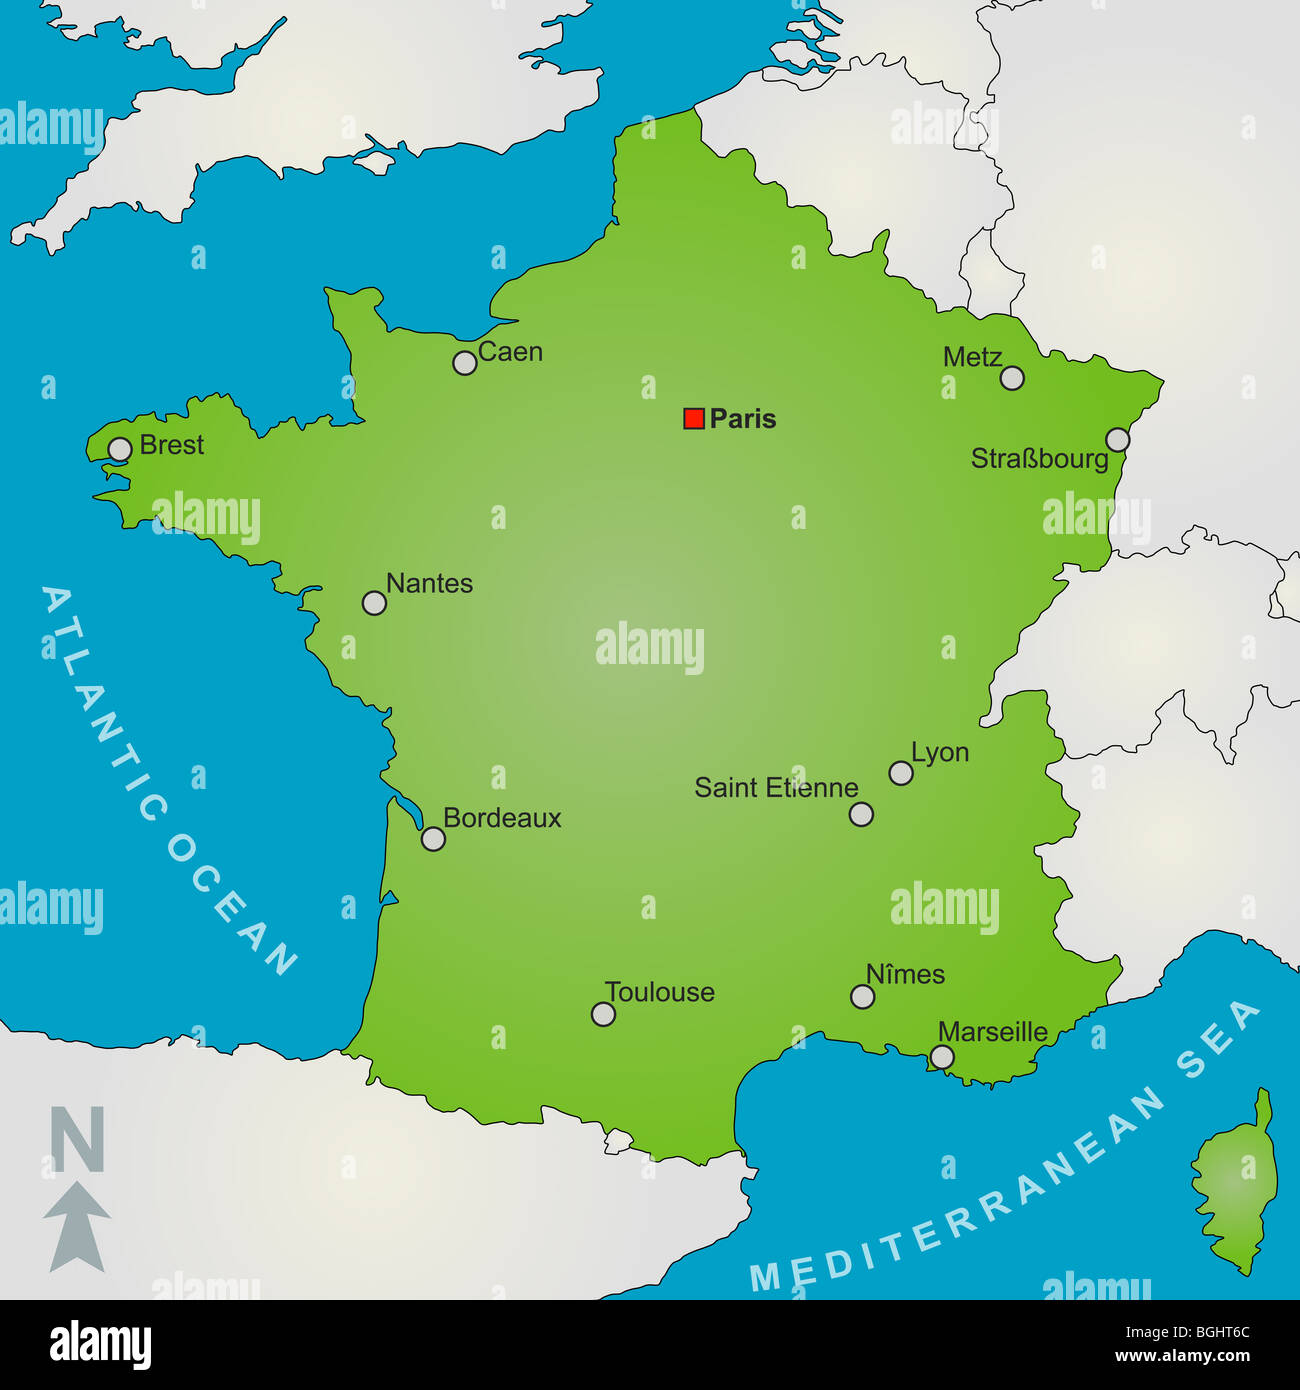 France map stock photos france map stock images alamy a stylized map of france showing several big cities and nearby countries stock image gumiabroncs Images